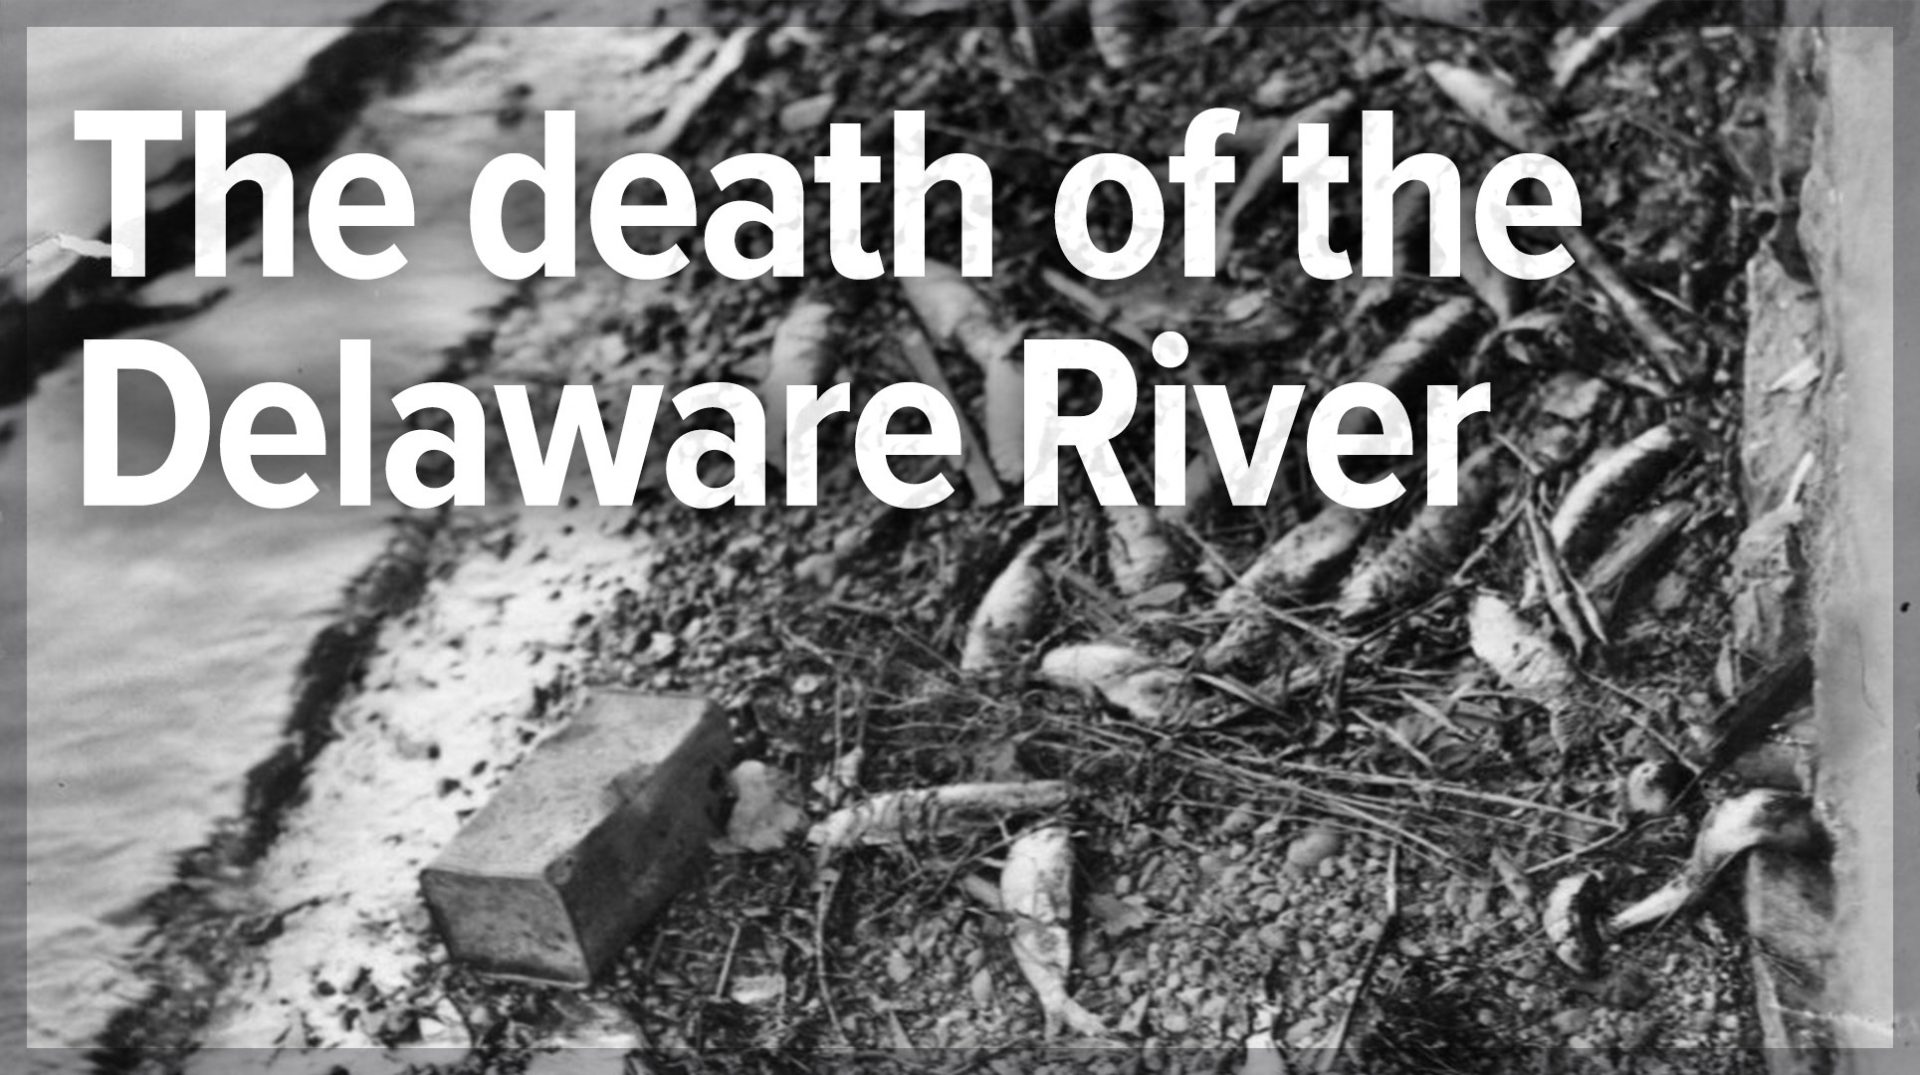 The death of the Delaware River